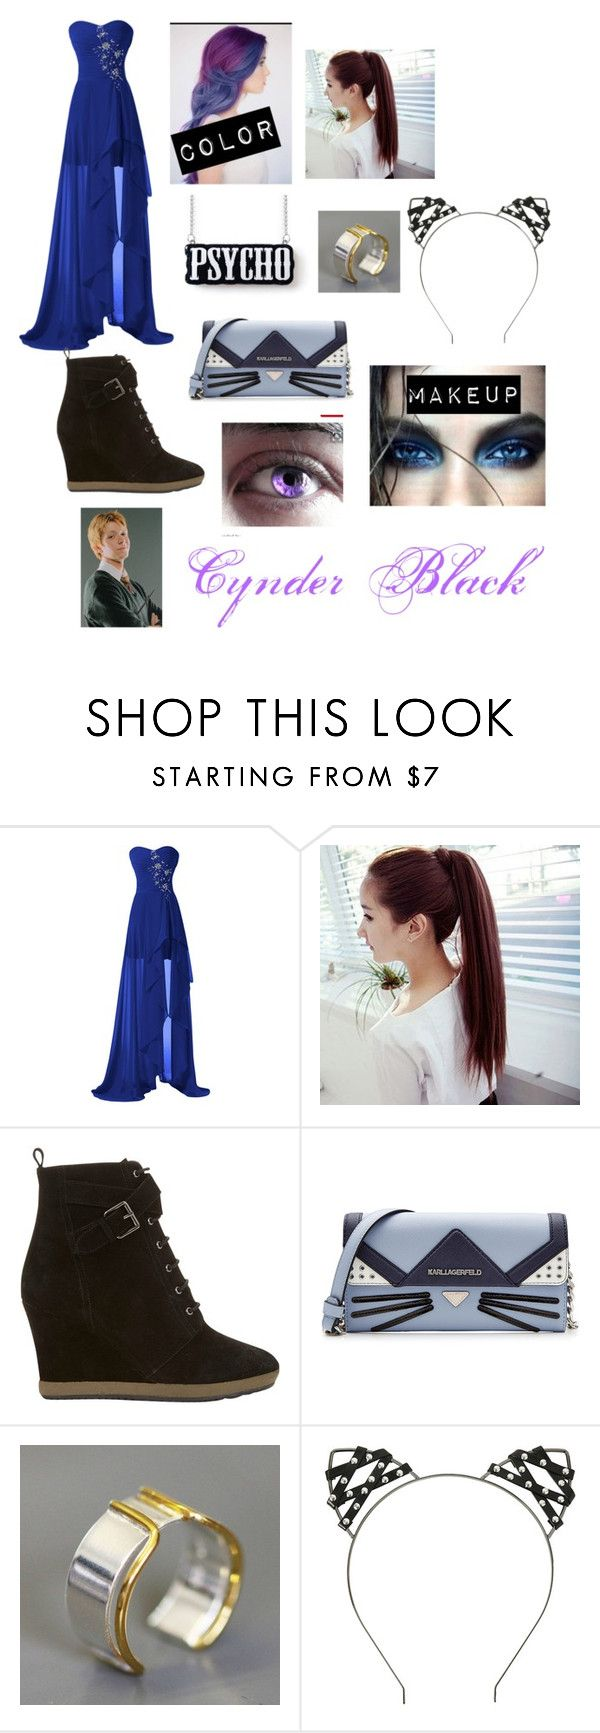 """""""Cynder Black (yule ball)"""" by supimanoddperson ❤ liked on Polyvore featuring Mint Velvet, Karl Lagerfeld and Maya Magal"""